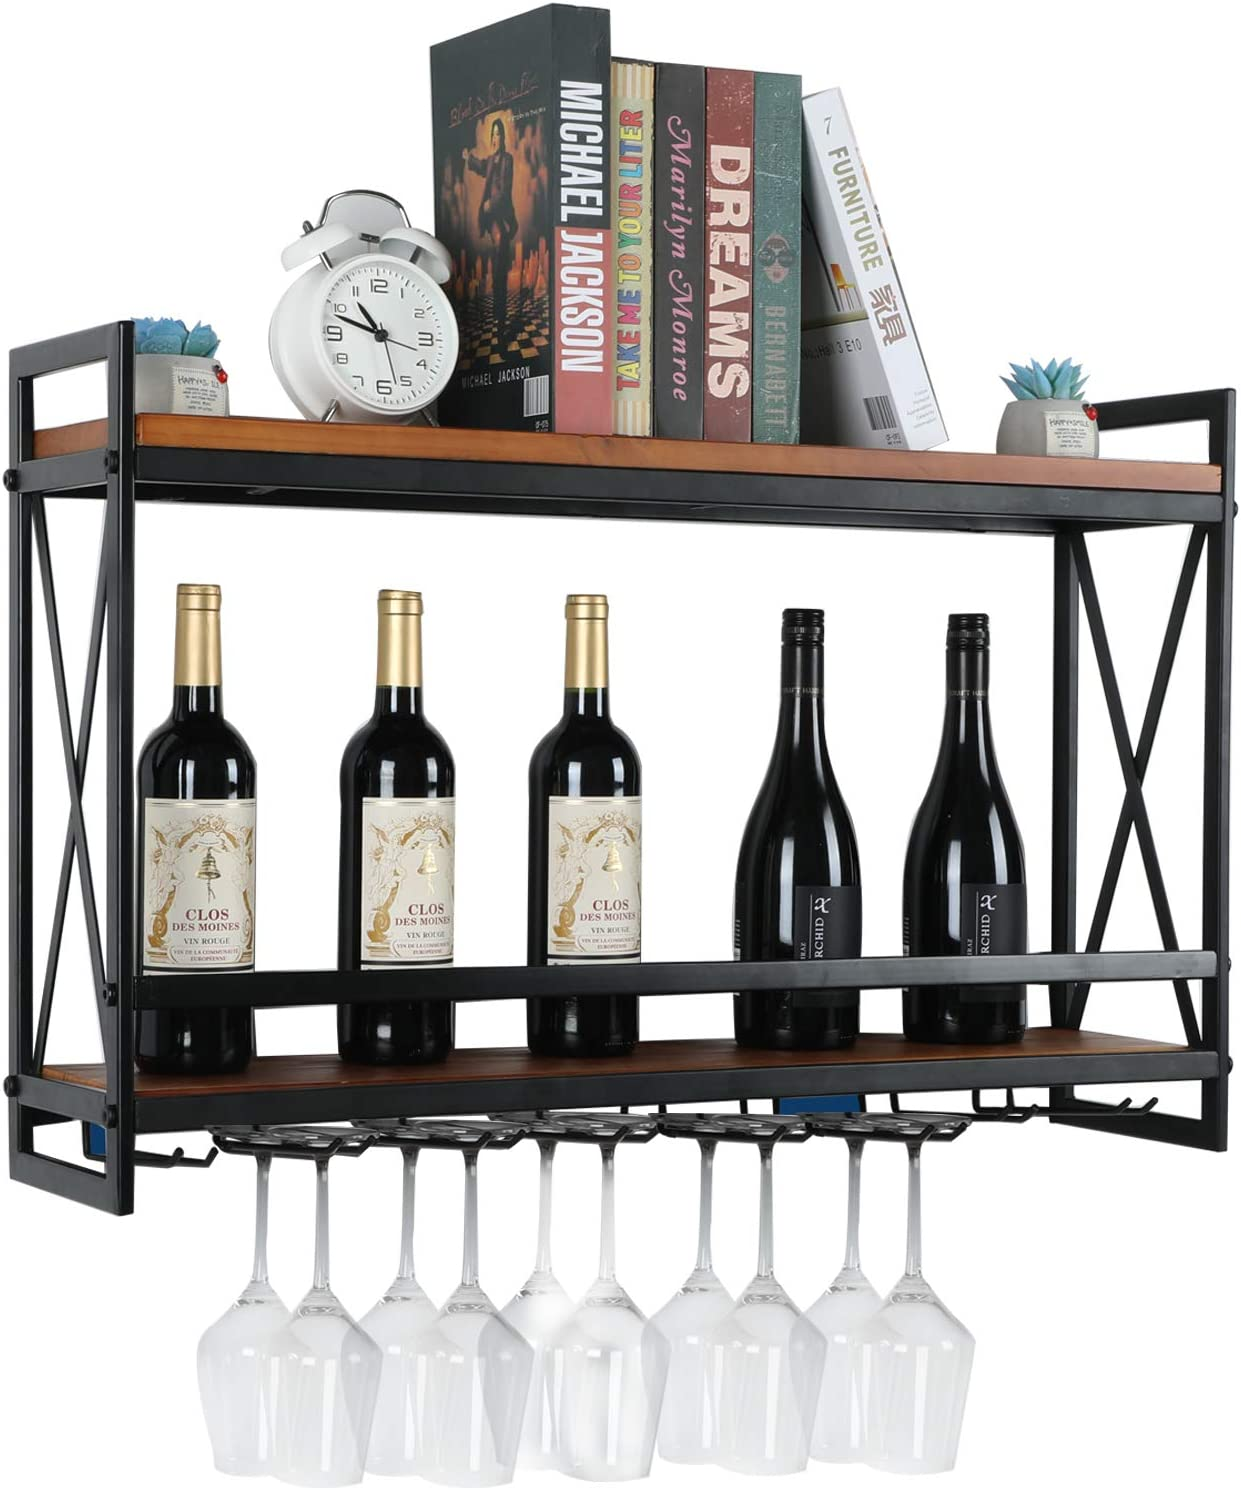 "Wall Mounted Wine Rack with 8 Stem Glass Holders, Industrial Hanging Wine Rack 2-Tier Wooden Shelf, Wine Bottle Stemware Glass Rack for Kitchen, Bar or Home (31.5''L x 7.87""W x 21.2""H)"